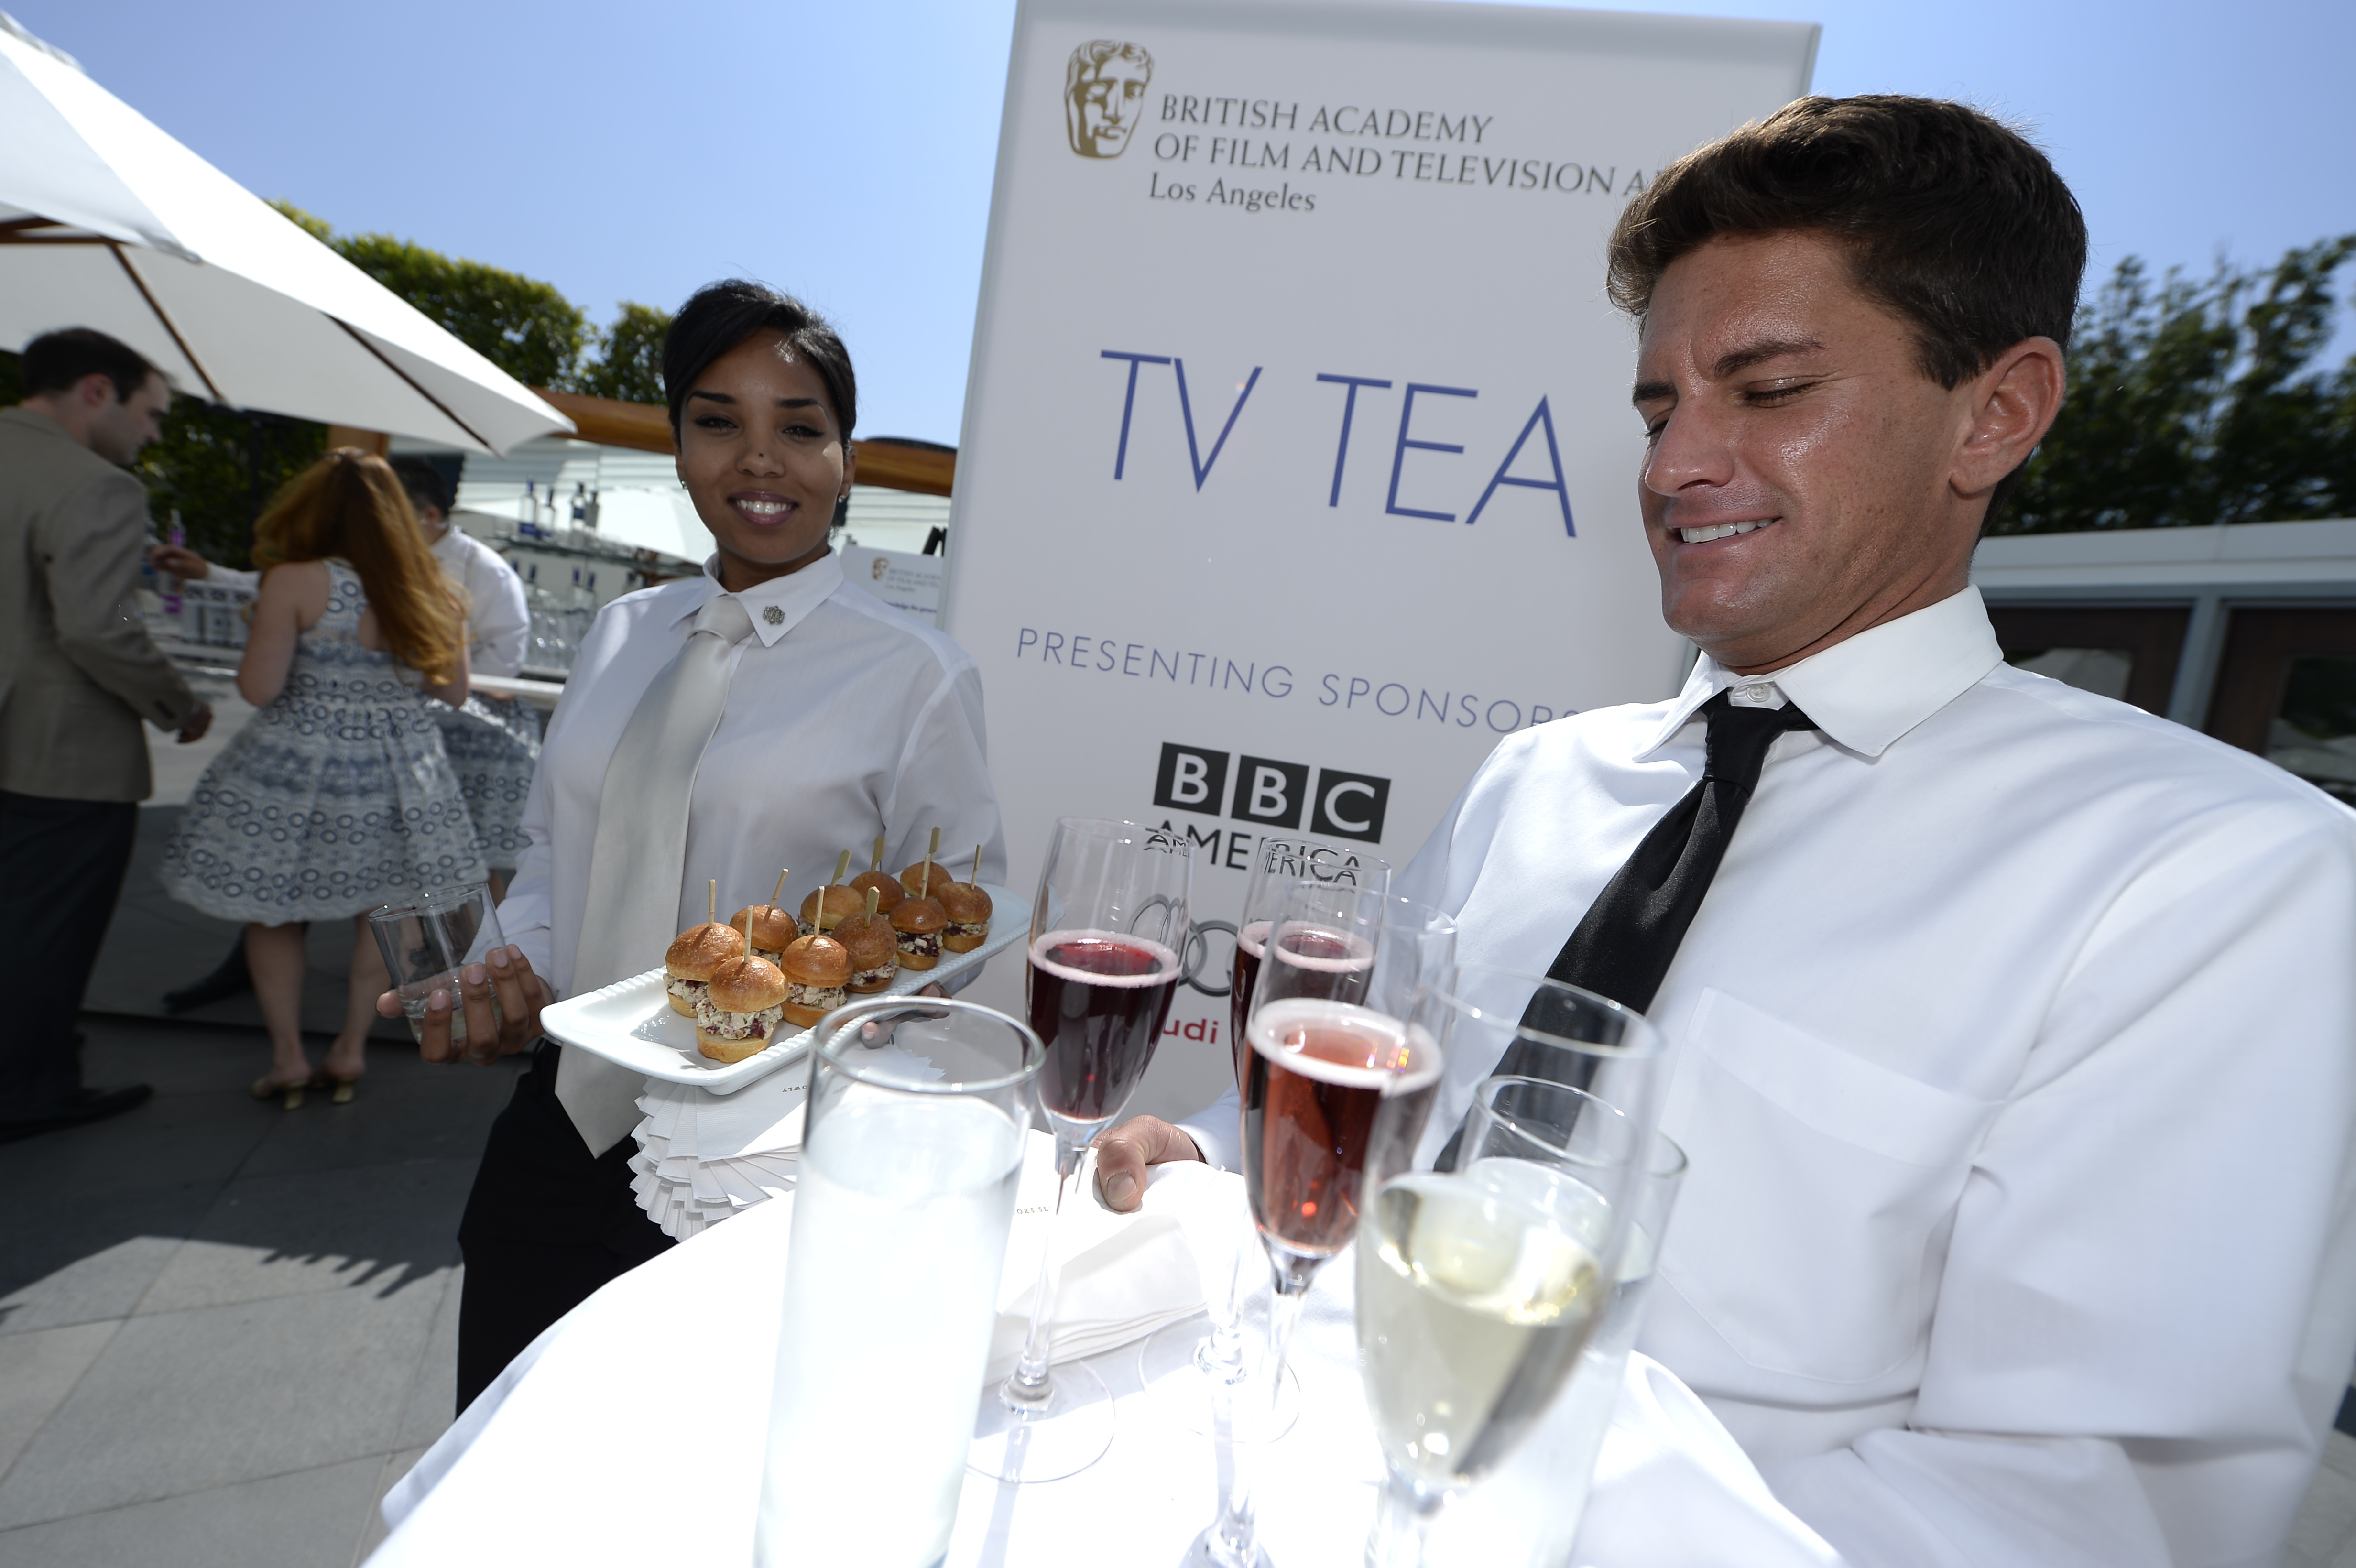 British Academy of Film & TV Tea